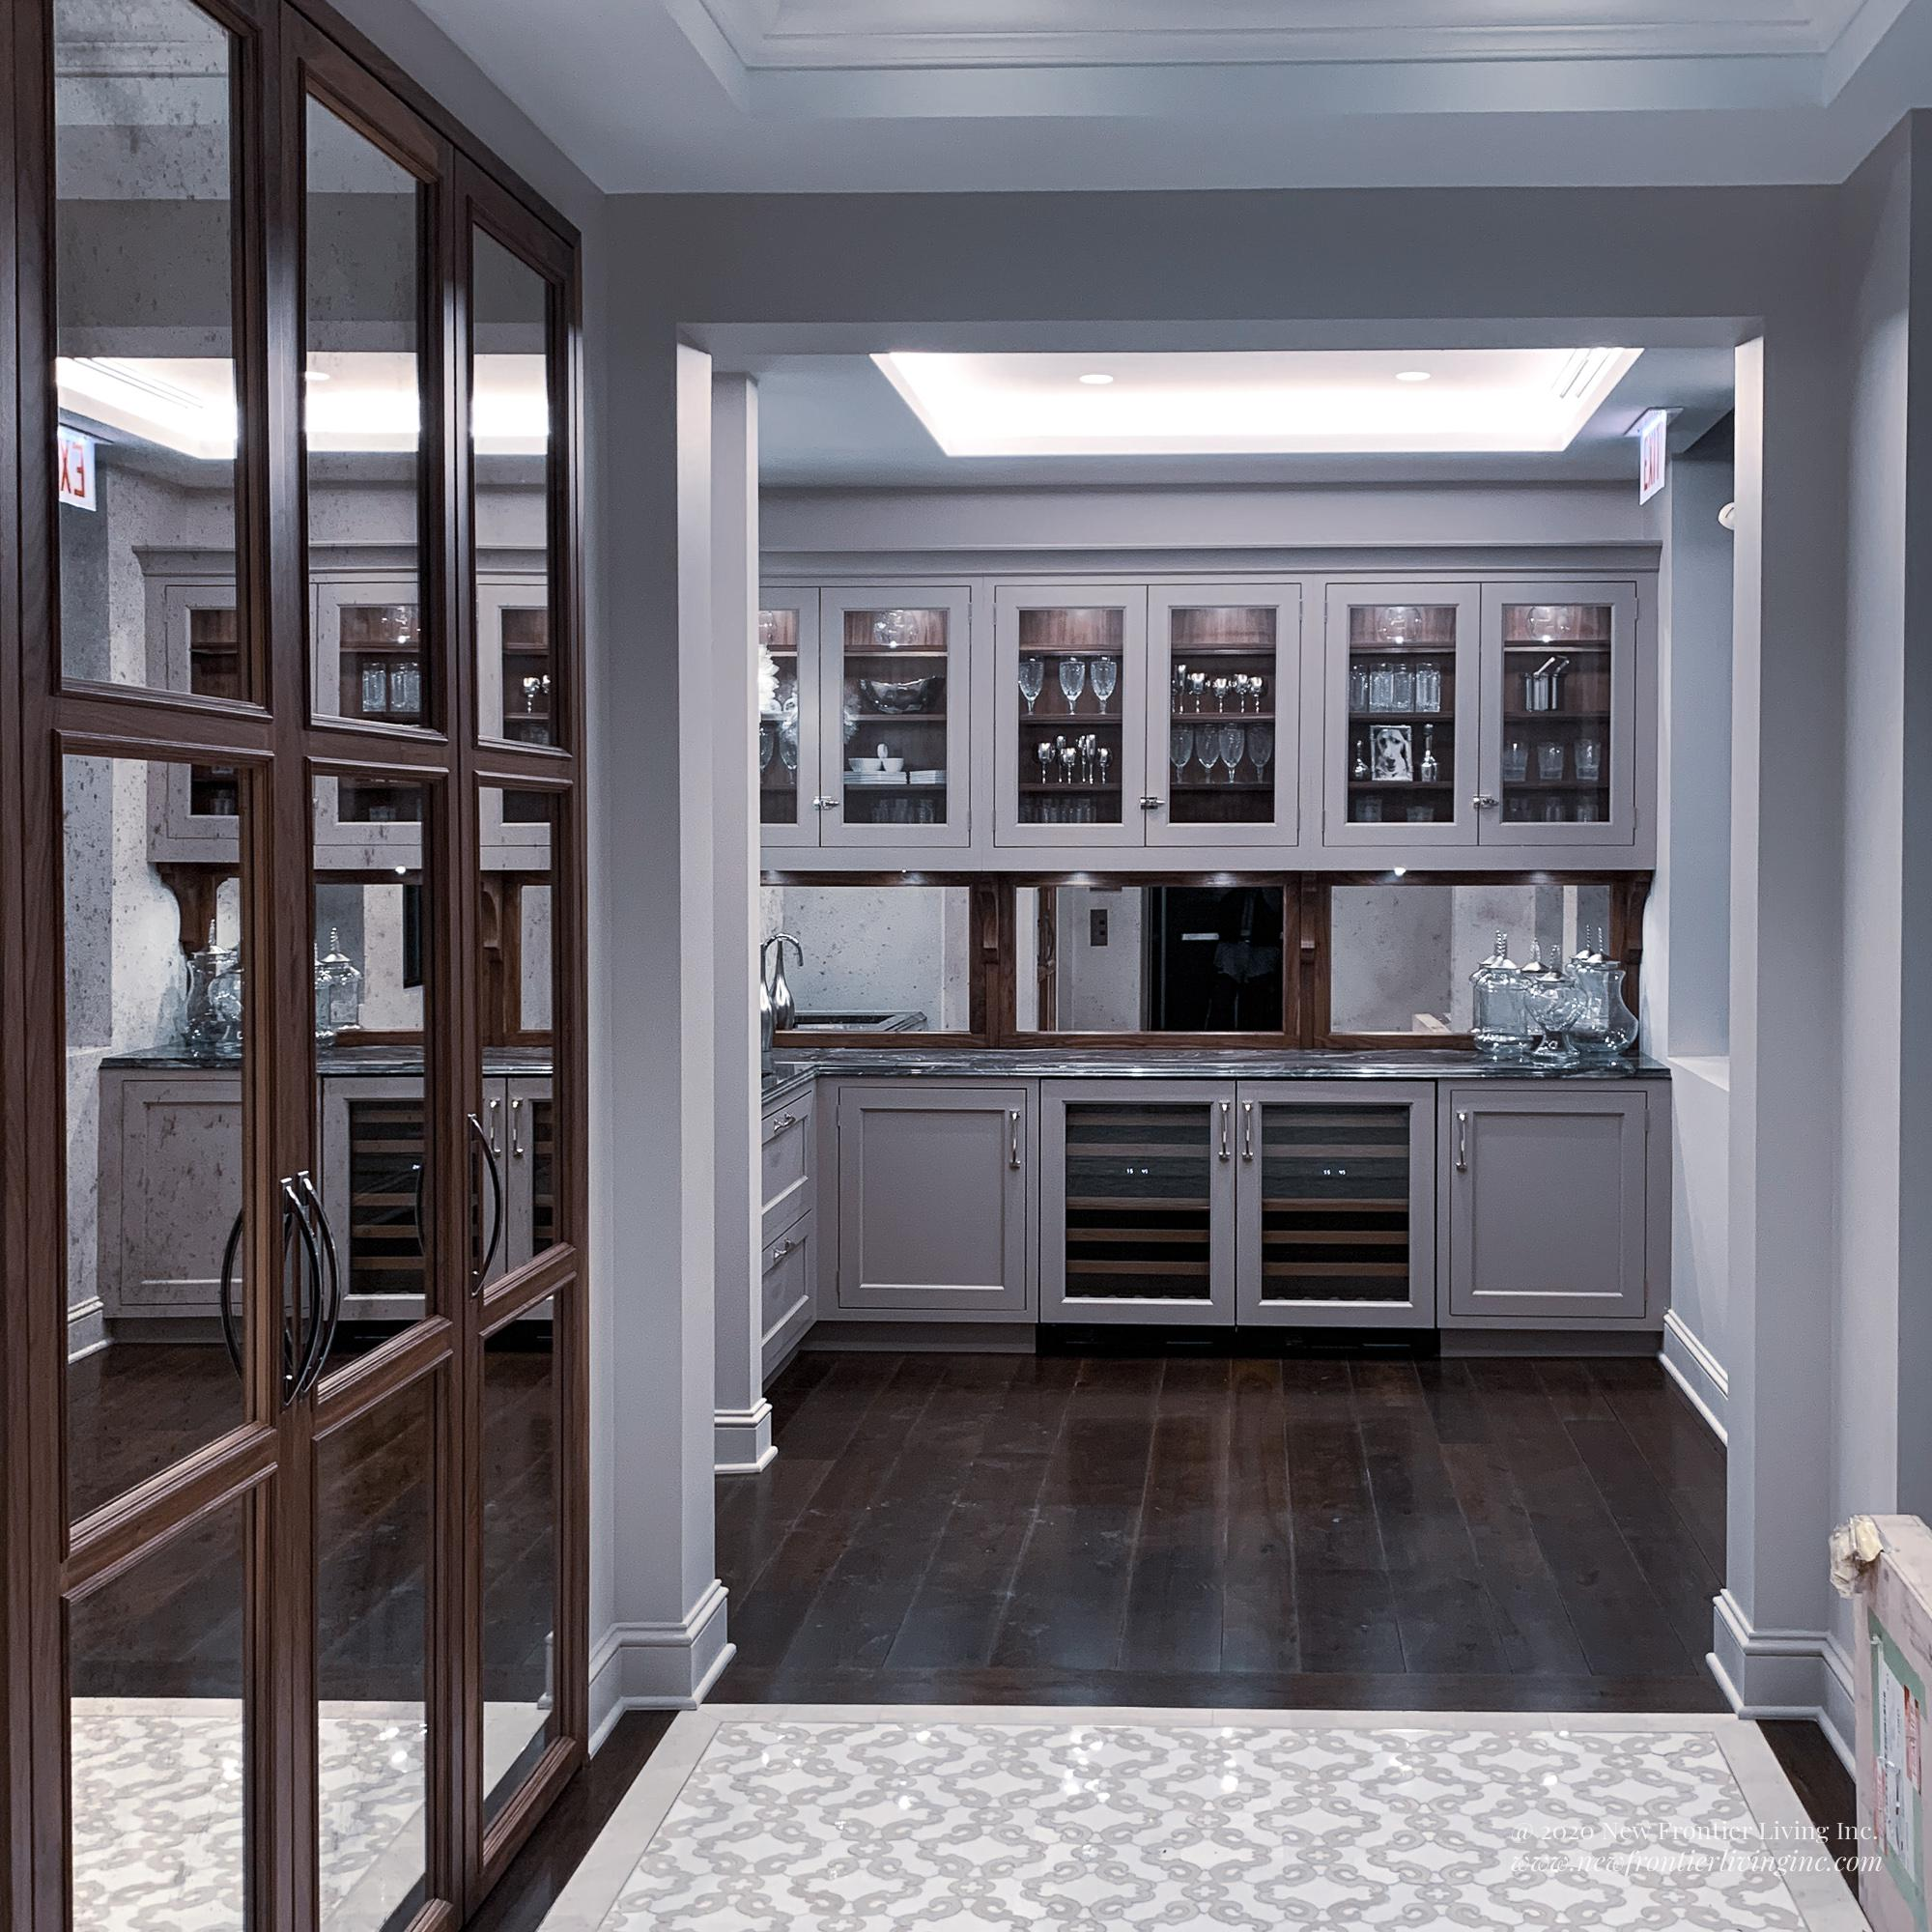 Lavender traditional kitchen cabinetry and upper glass cabinets, tall mirror pantries on the left, mirror backsplash